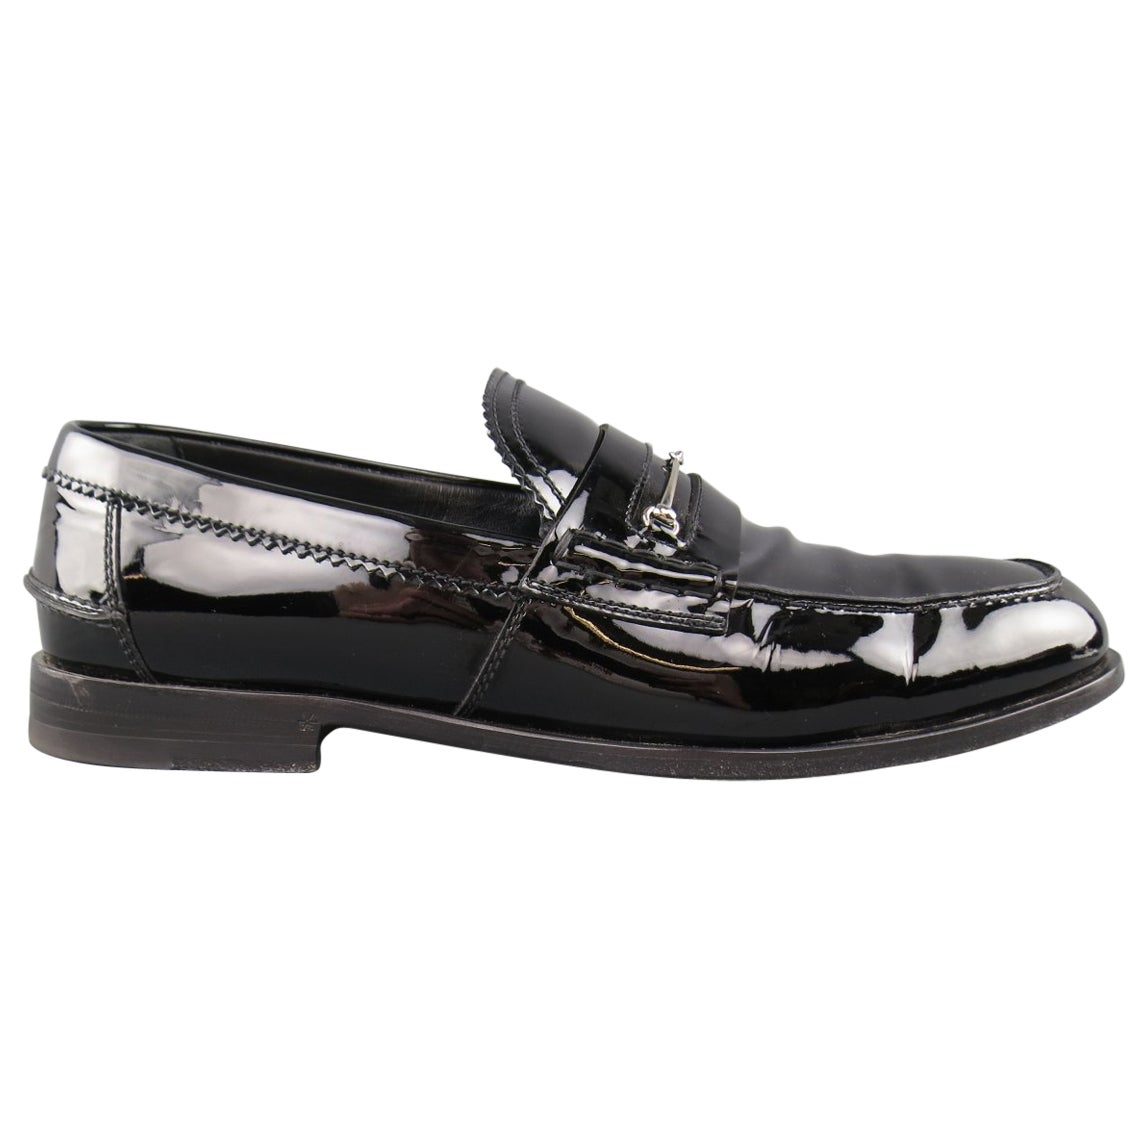 14441030b Men's GUCCI Loafers - Size 10.5 Black Patent Leather Horsebit Dress Shoes  at 1stdibs